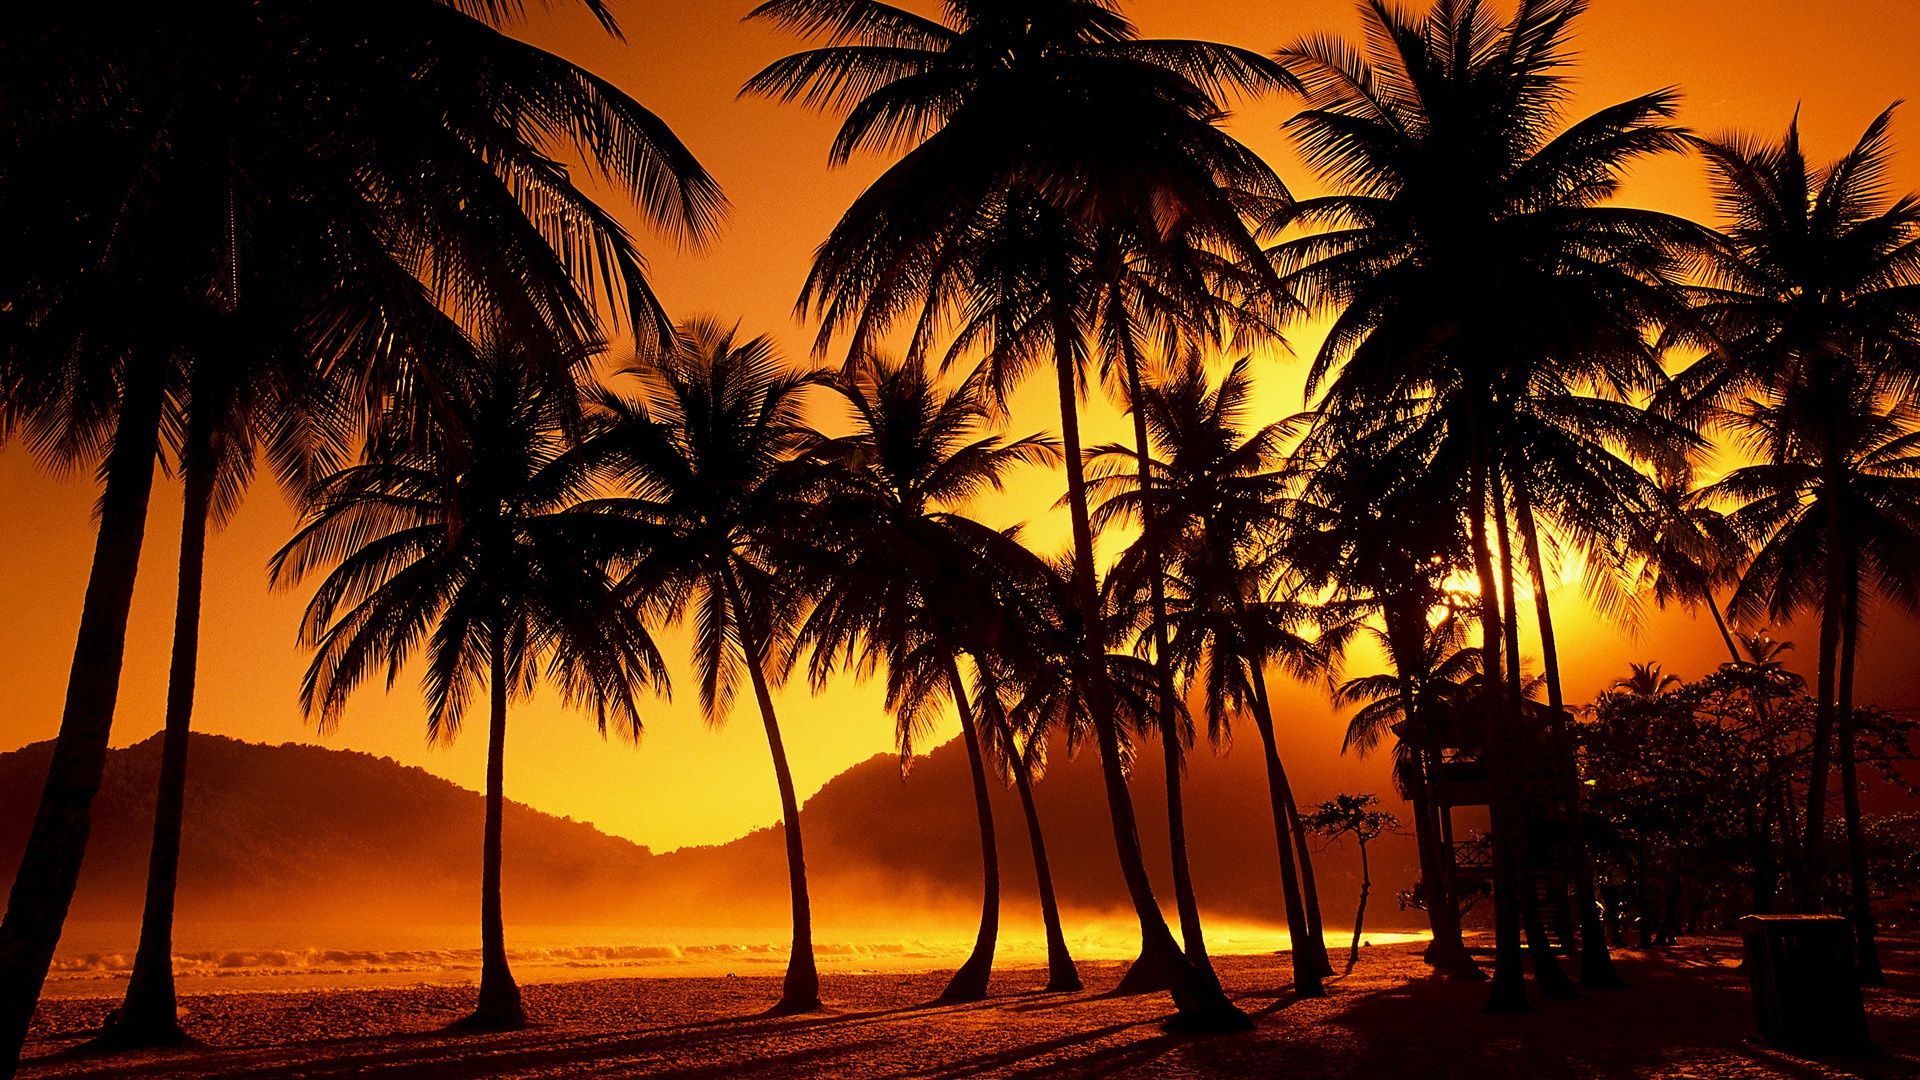 Free Download Tropical Sunset Wallpapers Hd Desktop Wallpapers Images, Photos, Reviews